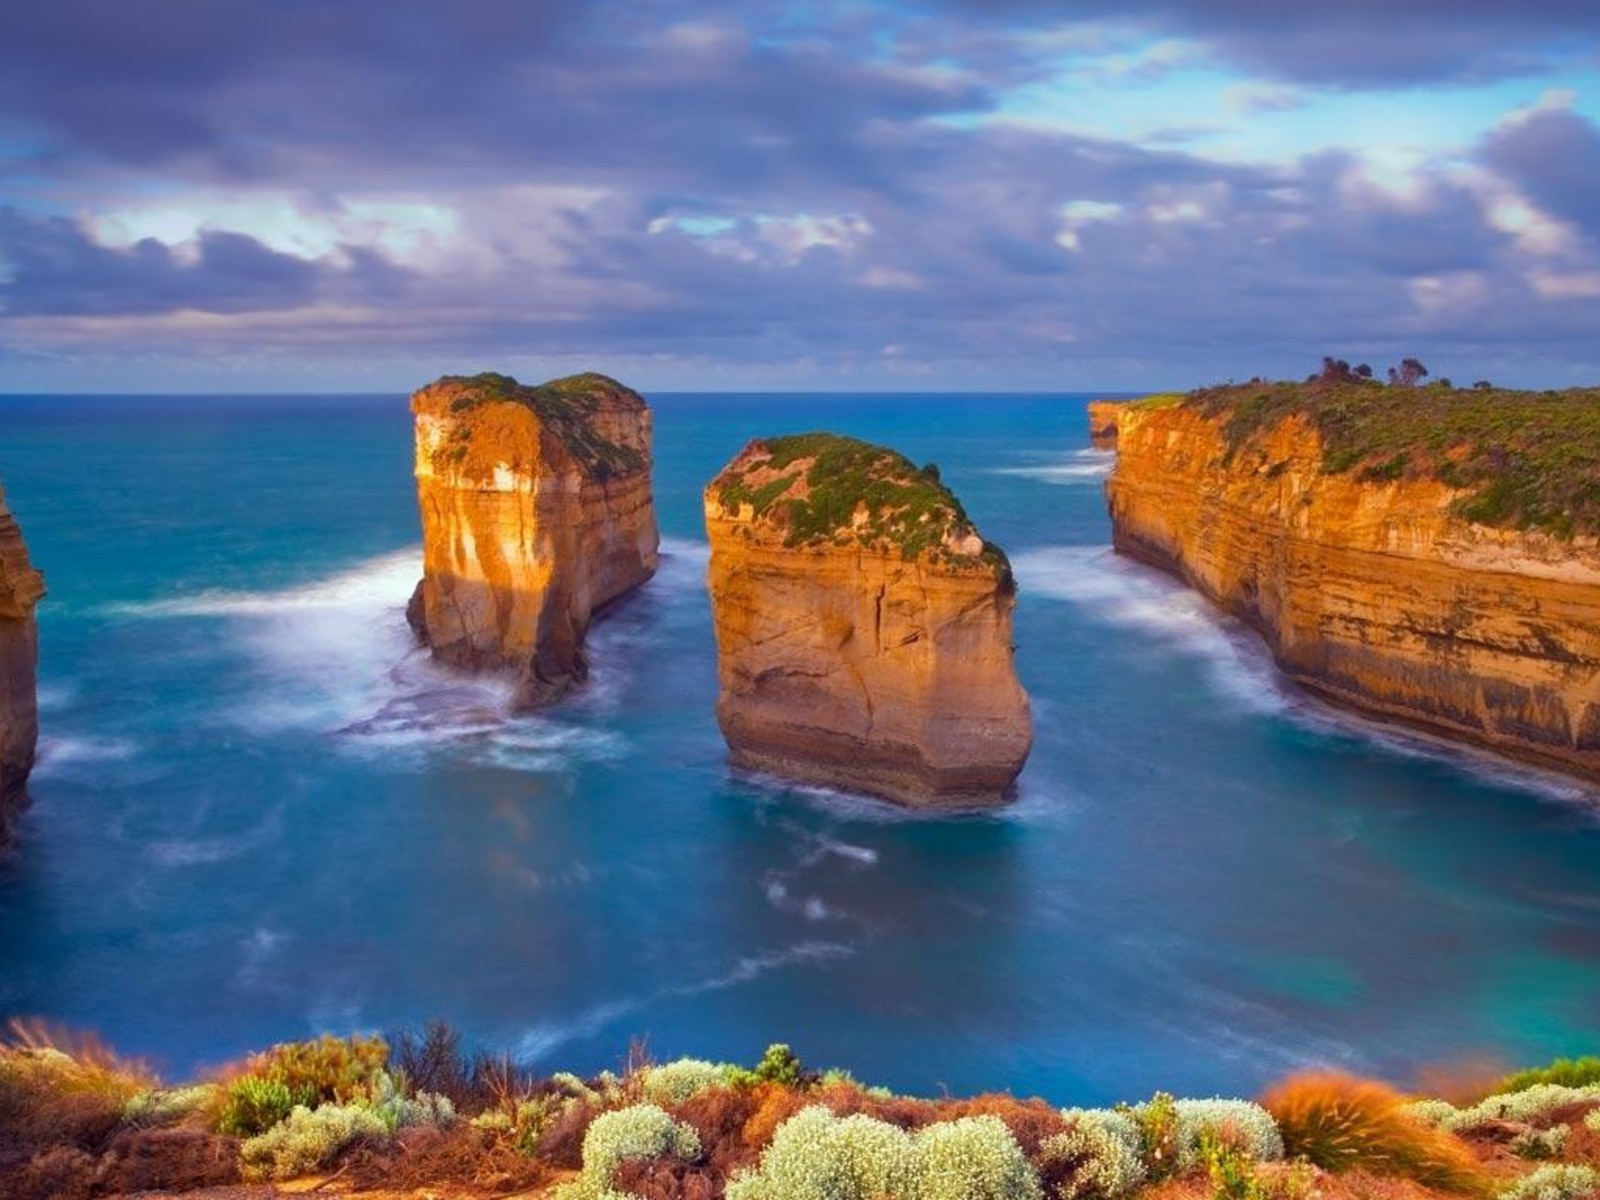 Cliffs Australia Bing Sea Wallpaper Allwallpaperin 3437 Pc En